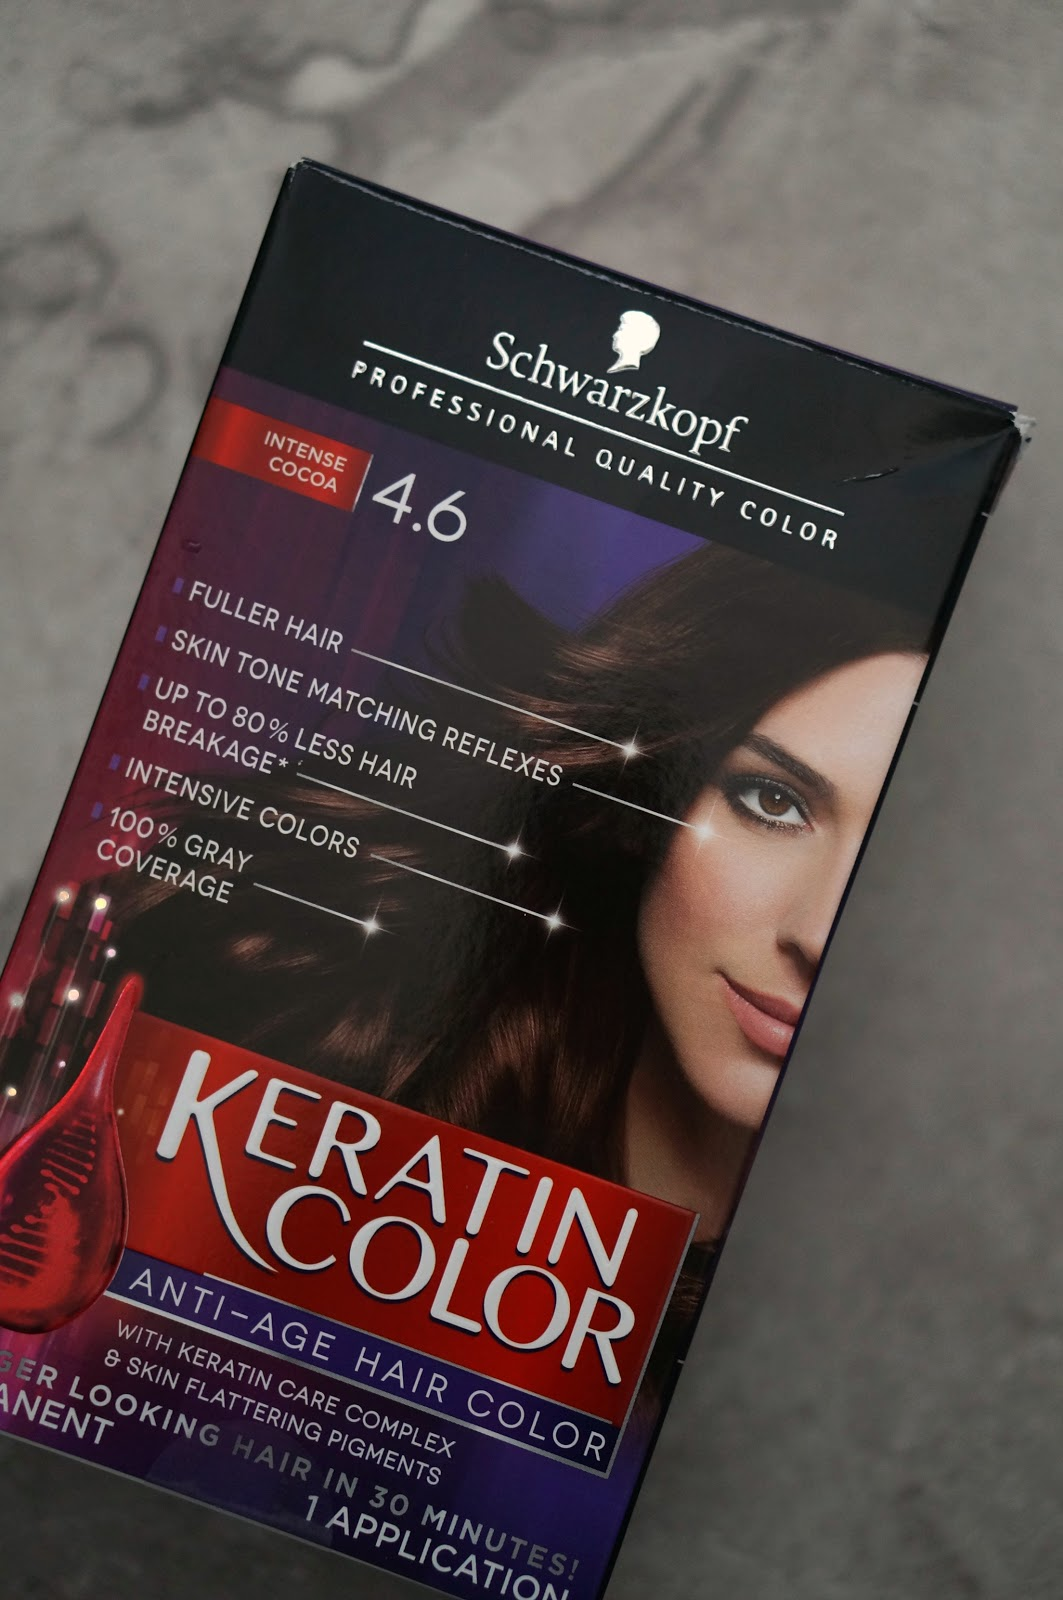 Rebecca Lately Schwarzkopf Keratin Color Routine #ad #CollectiveBias #APassionForHair @walmart @schwarzkopfus